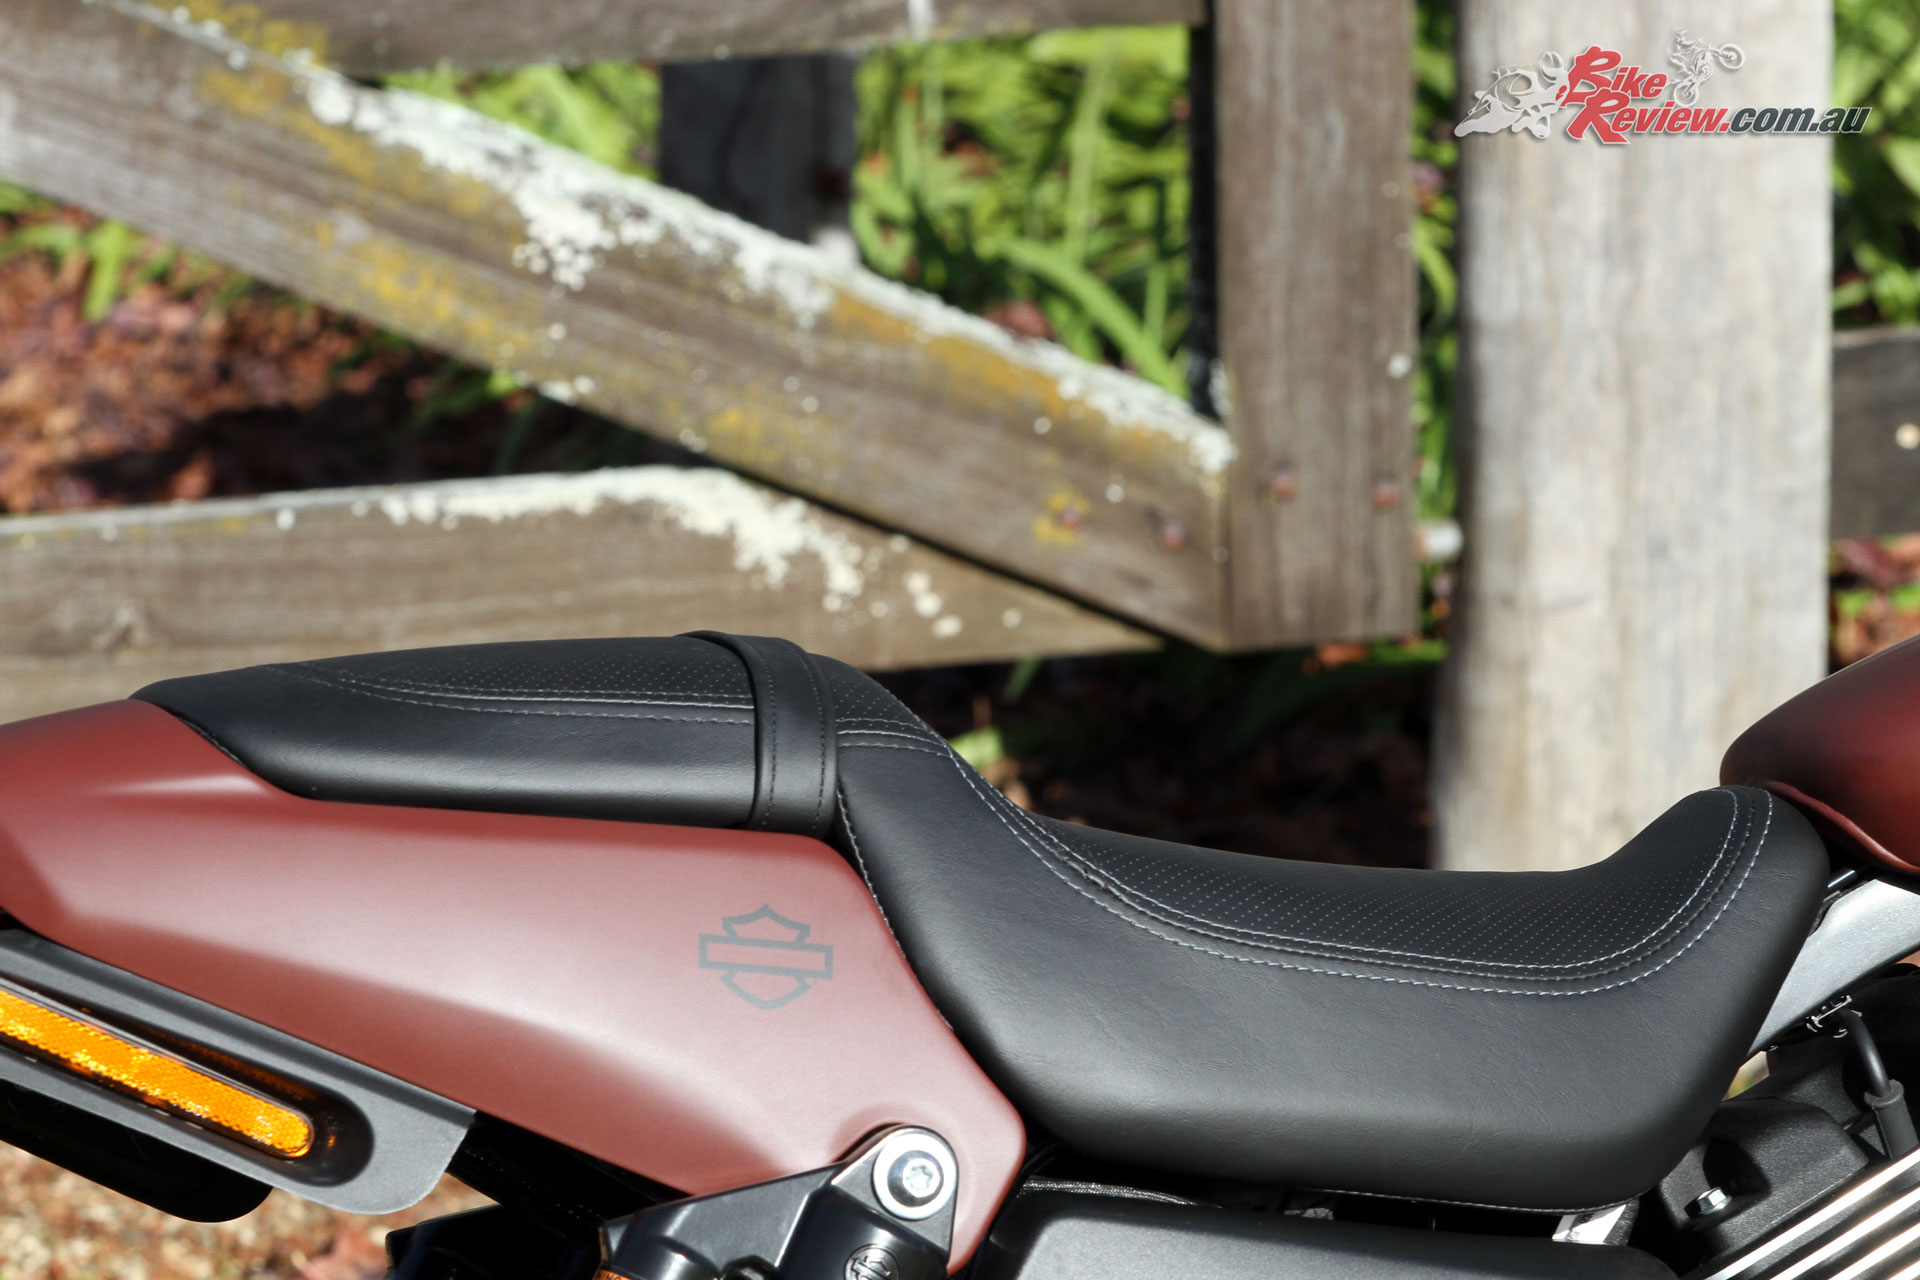 Seat height is 765mm making for an easy reach to the ground and inviting perch to a wide variety of rider sizes